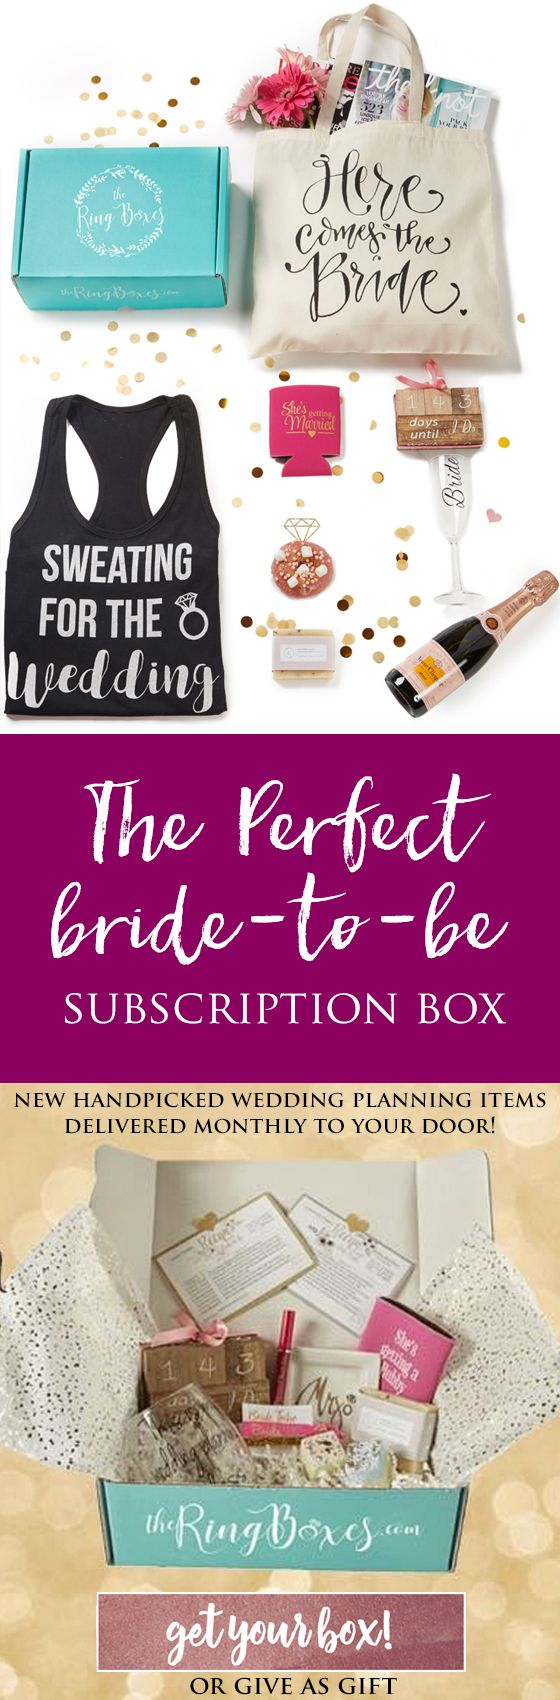 """Handpicked bridal items delivered monthly to your door! Or give as a gift for a bride-to-be! Boxes will include Items such as the cute """"Pop the champagne I'm changing my last name"""" tank tops, Vow booklets, Groom flasks, banners, cake toppers, MR & MRS chair signs, luggage tags, Spa and beauty products, Recipe cards to help our brides expand their cookbooks, as well as gorgeous wedding decor & favors, Date night perks & much more!"""